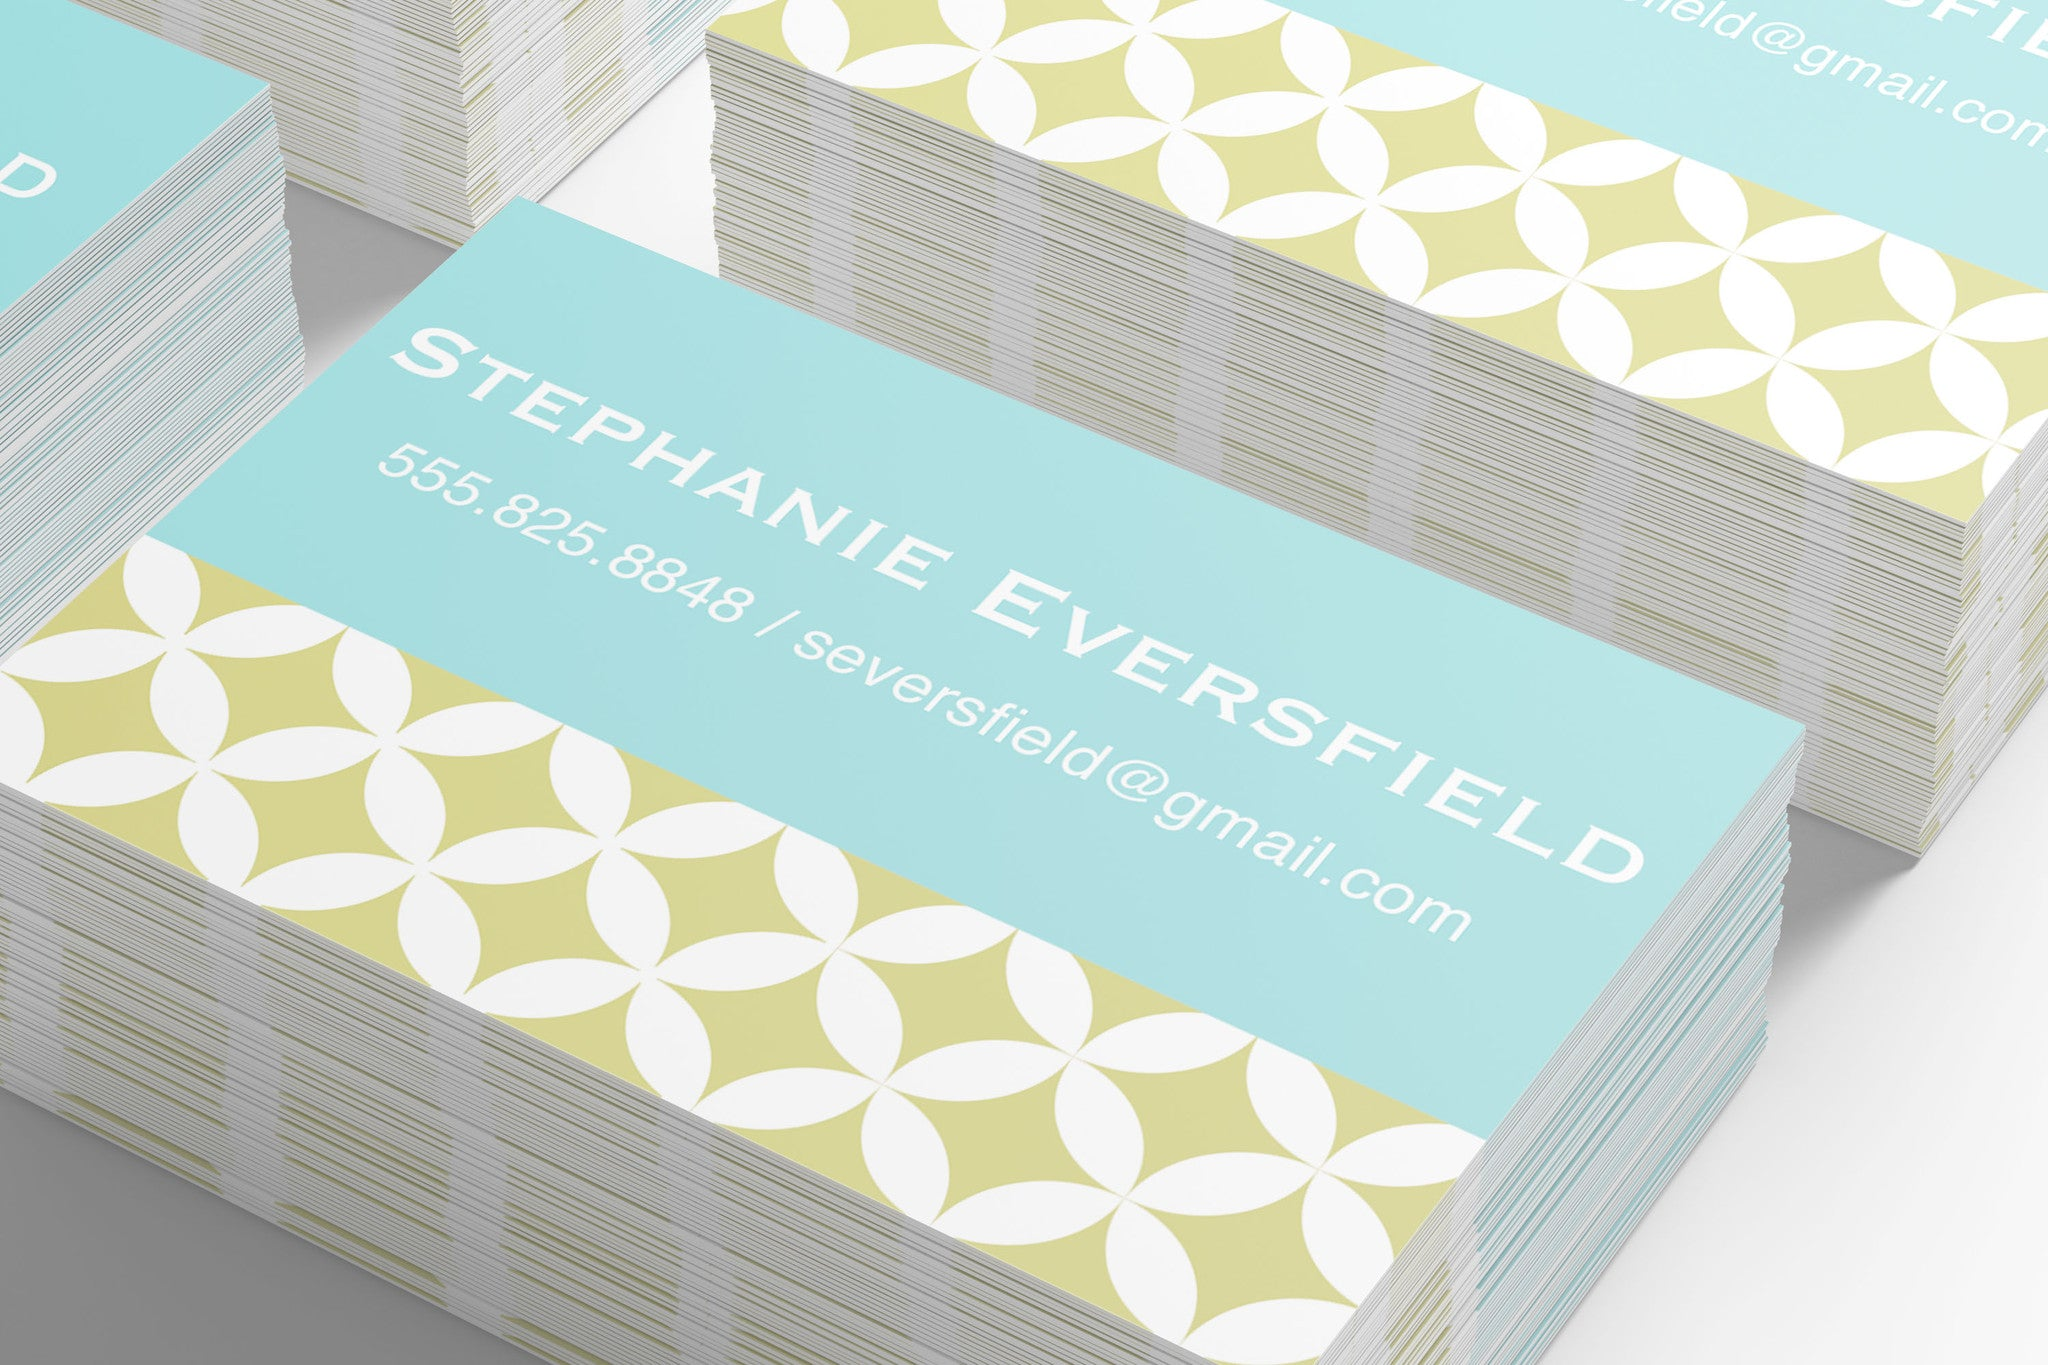 monogrammed business cards – nella designs